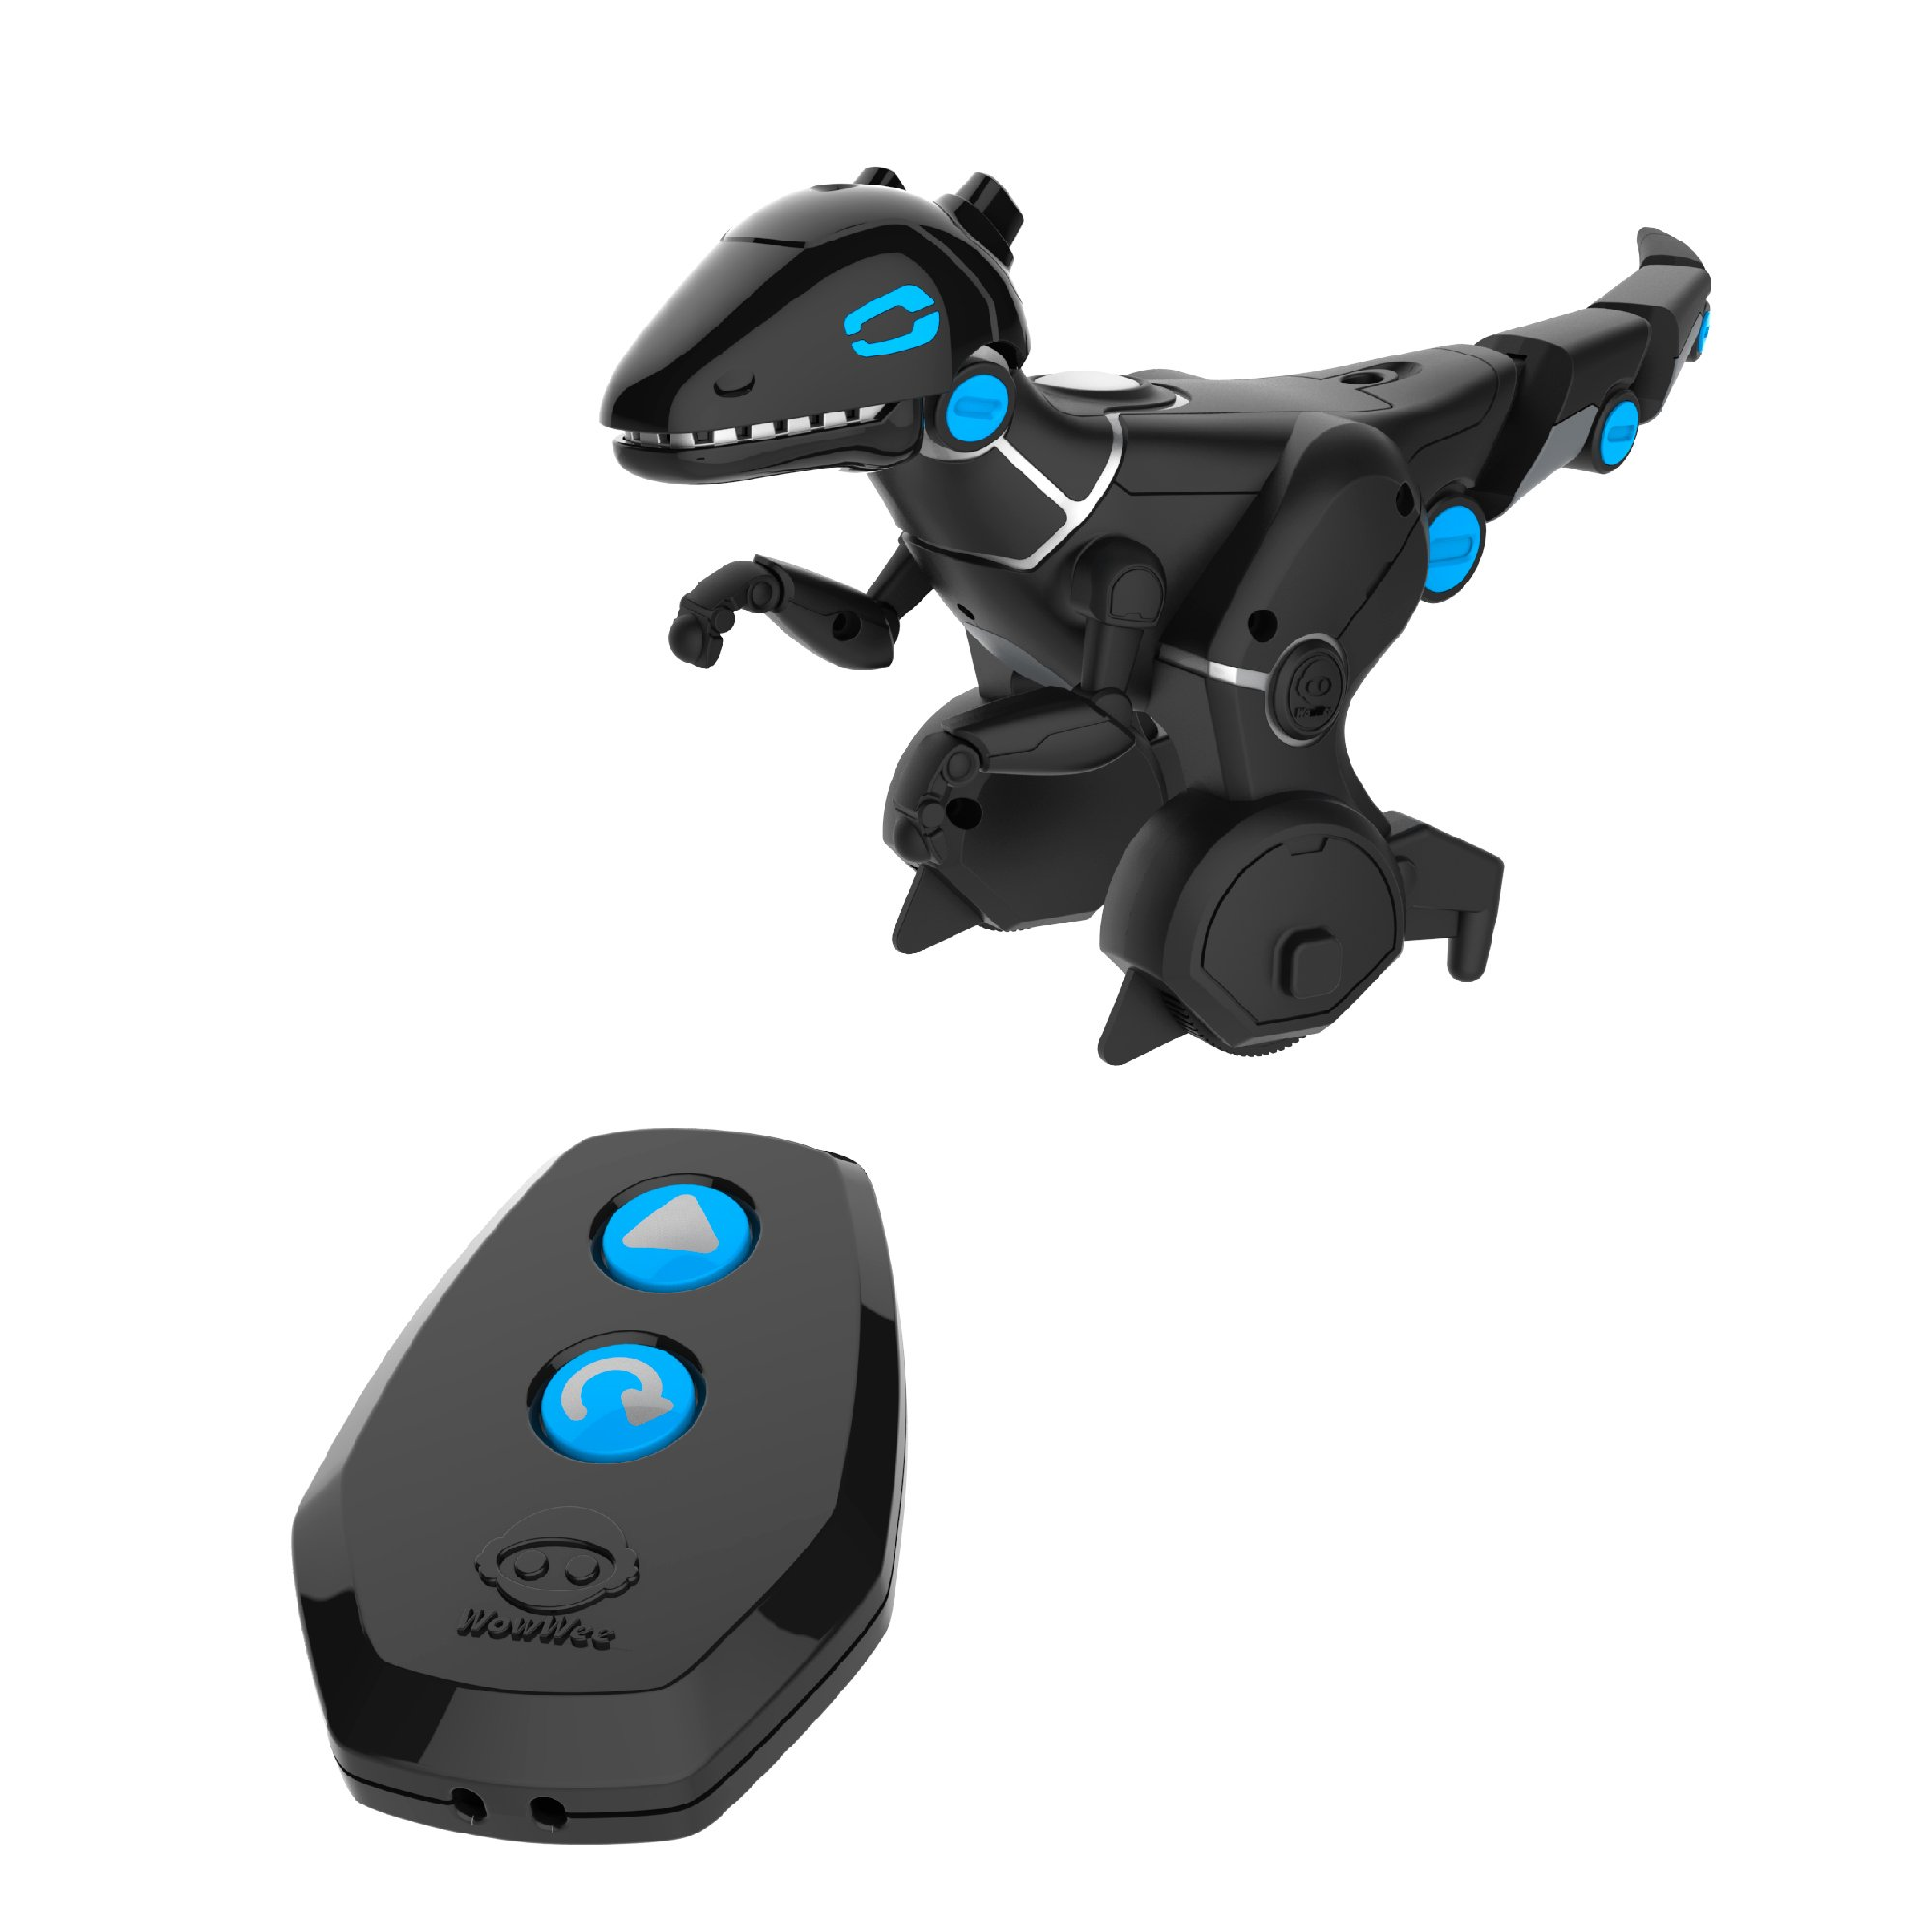 WowWee Miposaur RC Mini Edition Remote Control Robot by WowWee (Image #2)